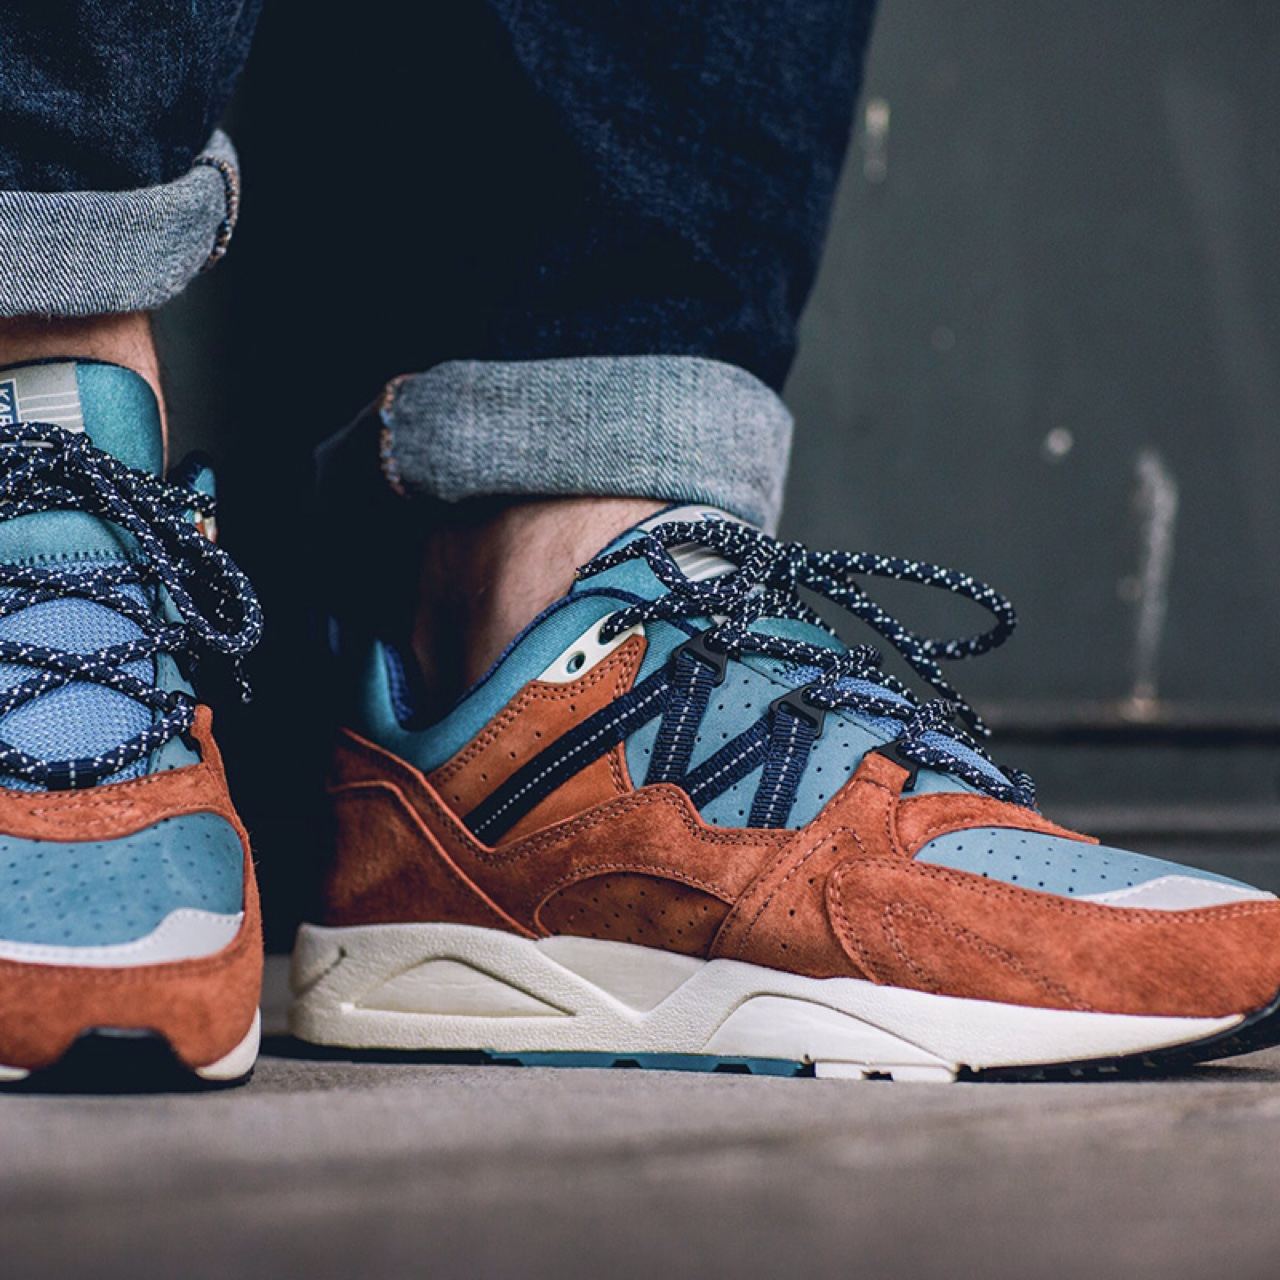 KARHU FUSION 2.0 for retail as worn by